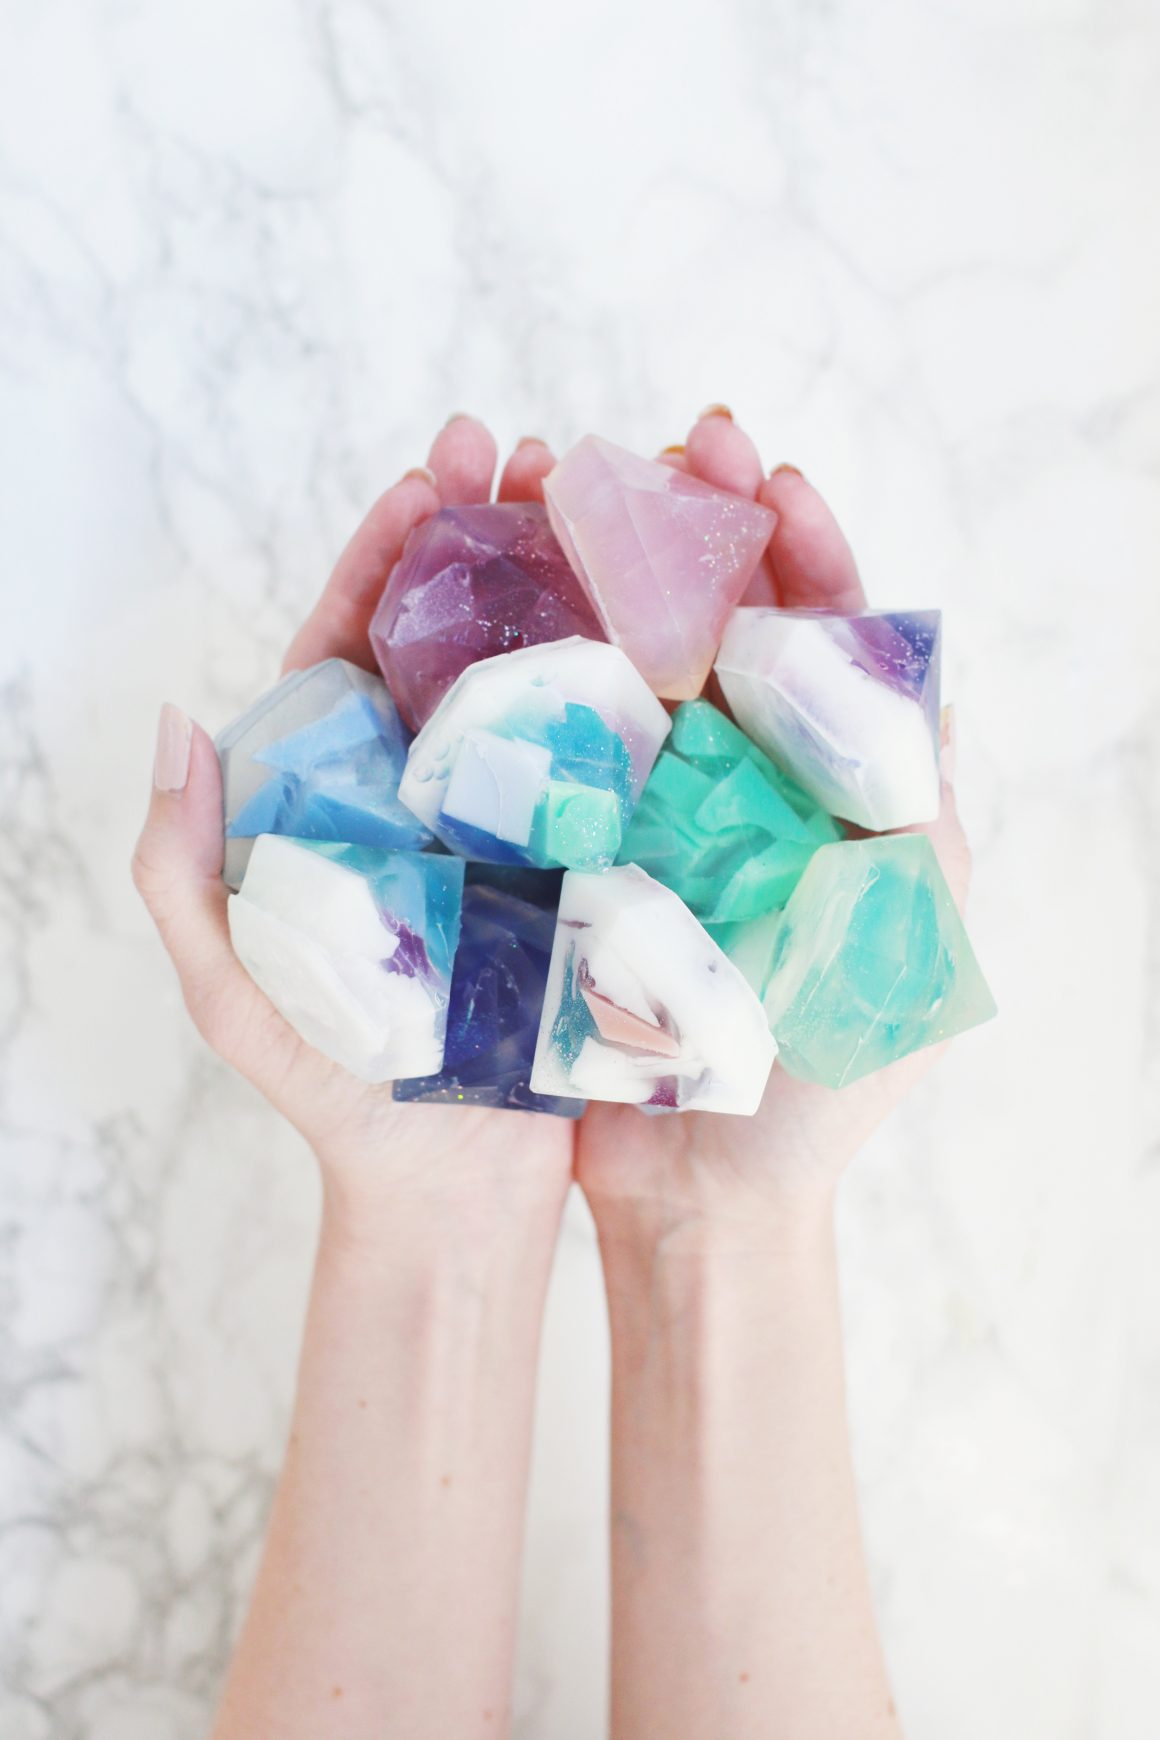 50 Easy Handmade Gift Ideas You'll Love: DIY Gemstone Soap from A Beautiful Mess